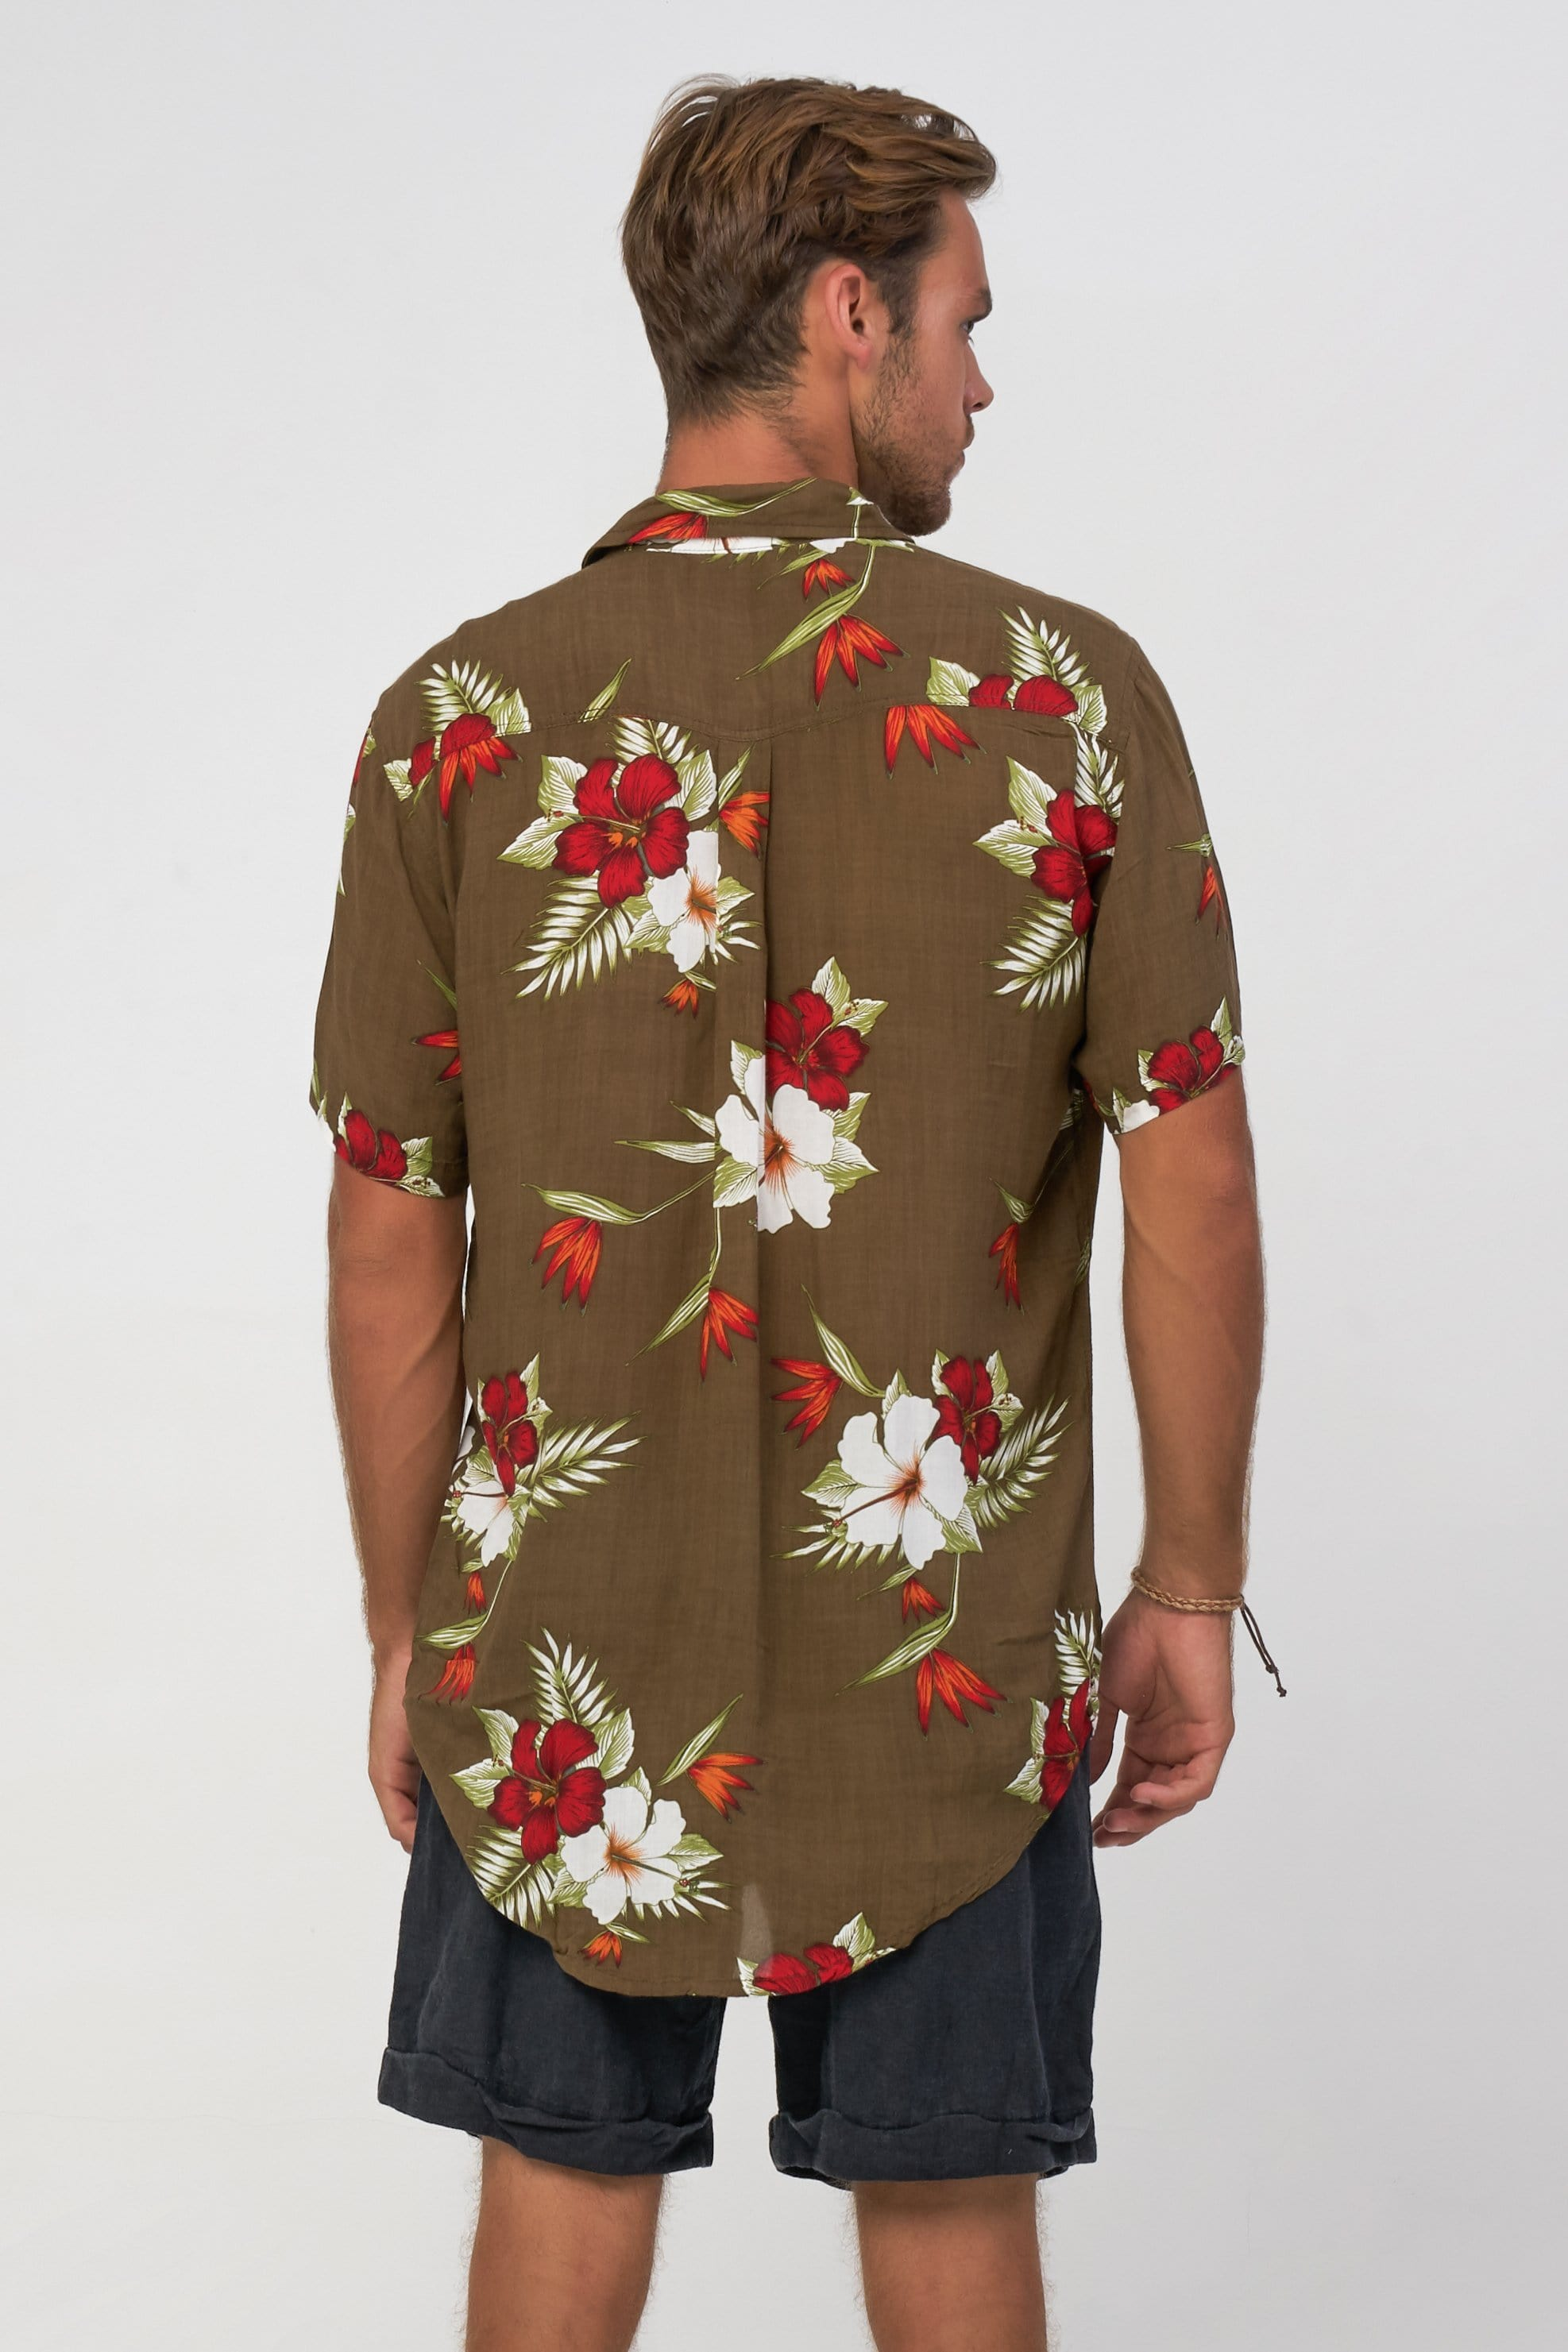 Hibiscus Shirt - Man Shirt - LOST IN PARADISE